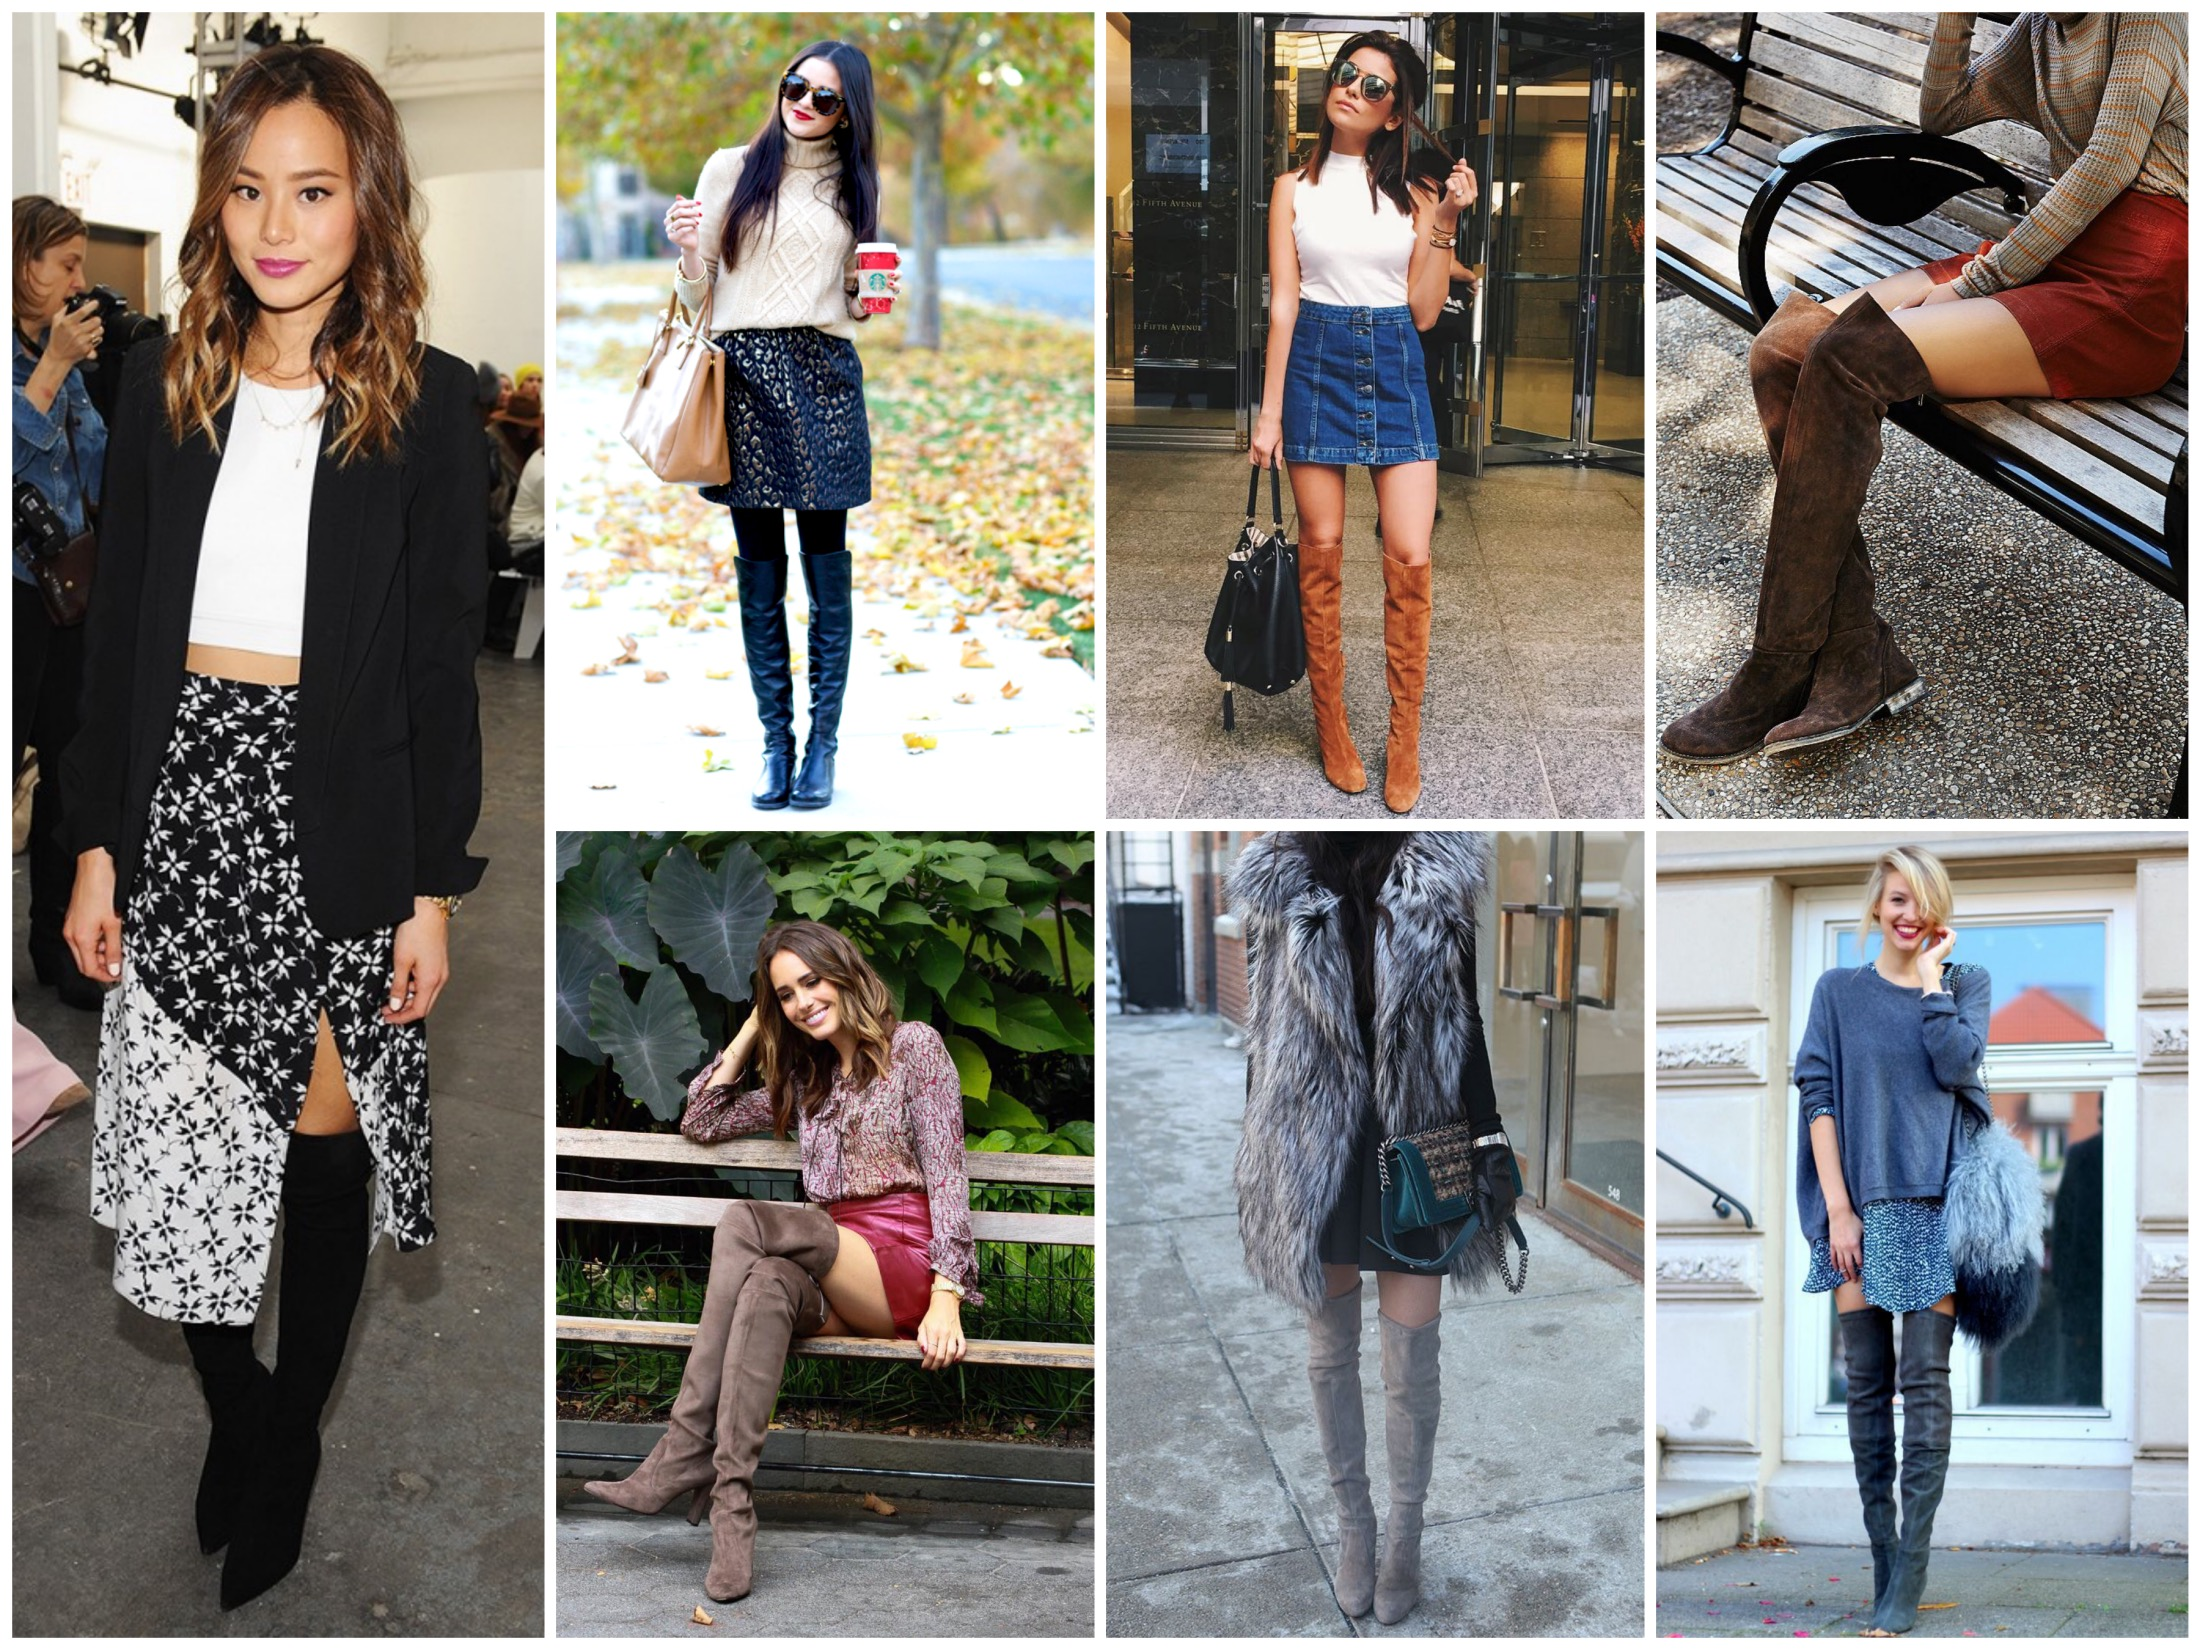 Wear over the knee boots with a skirt